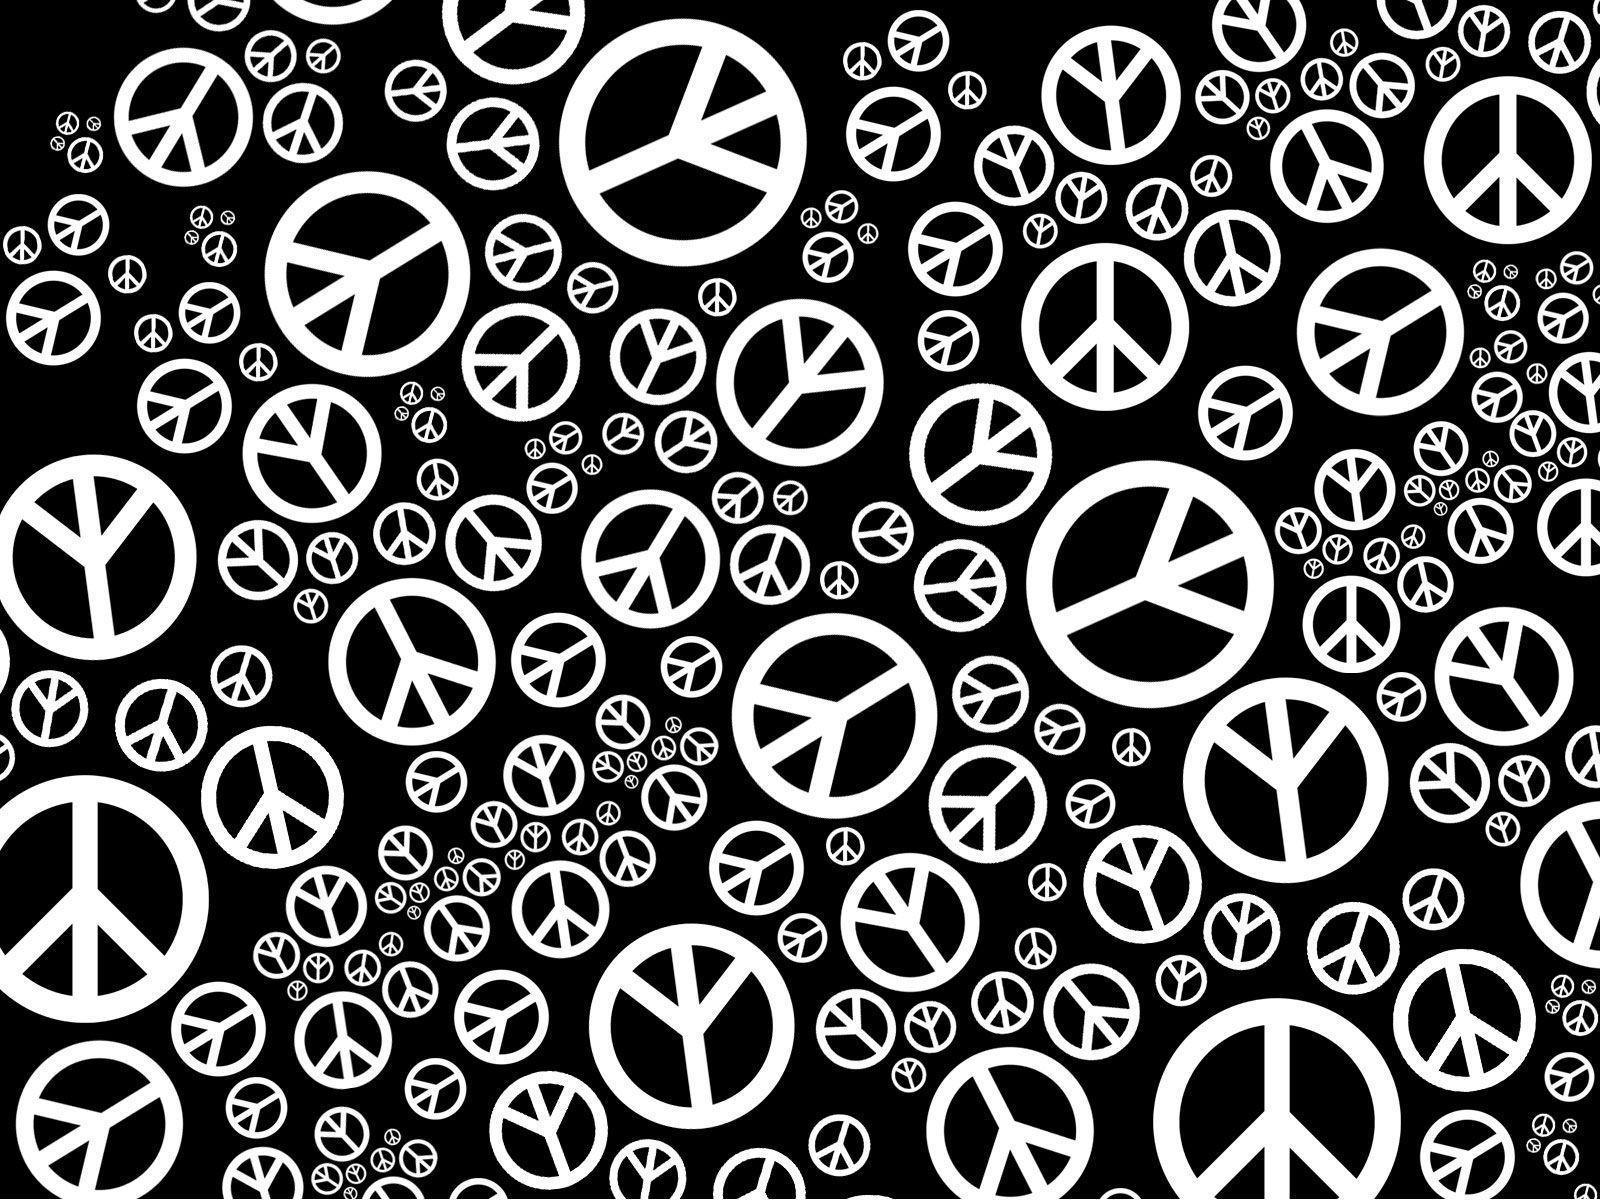 background designs peace sign - photo #28